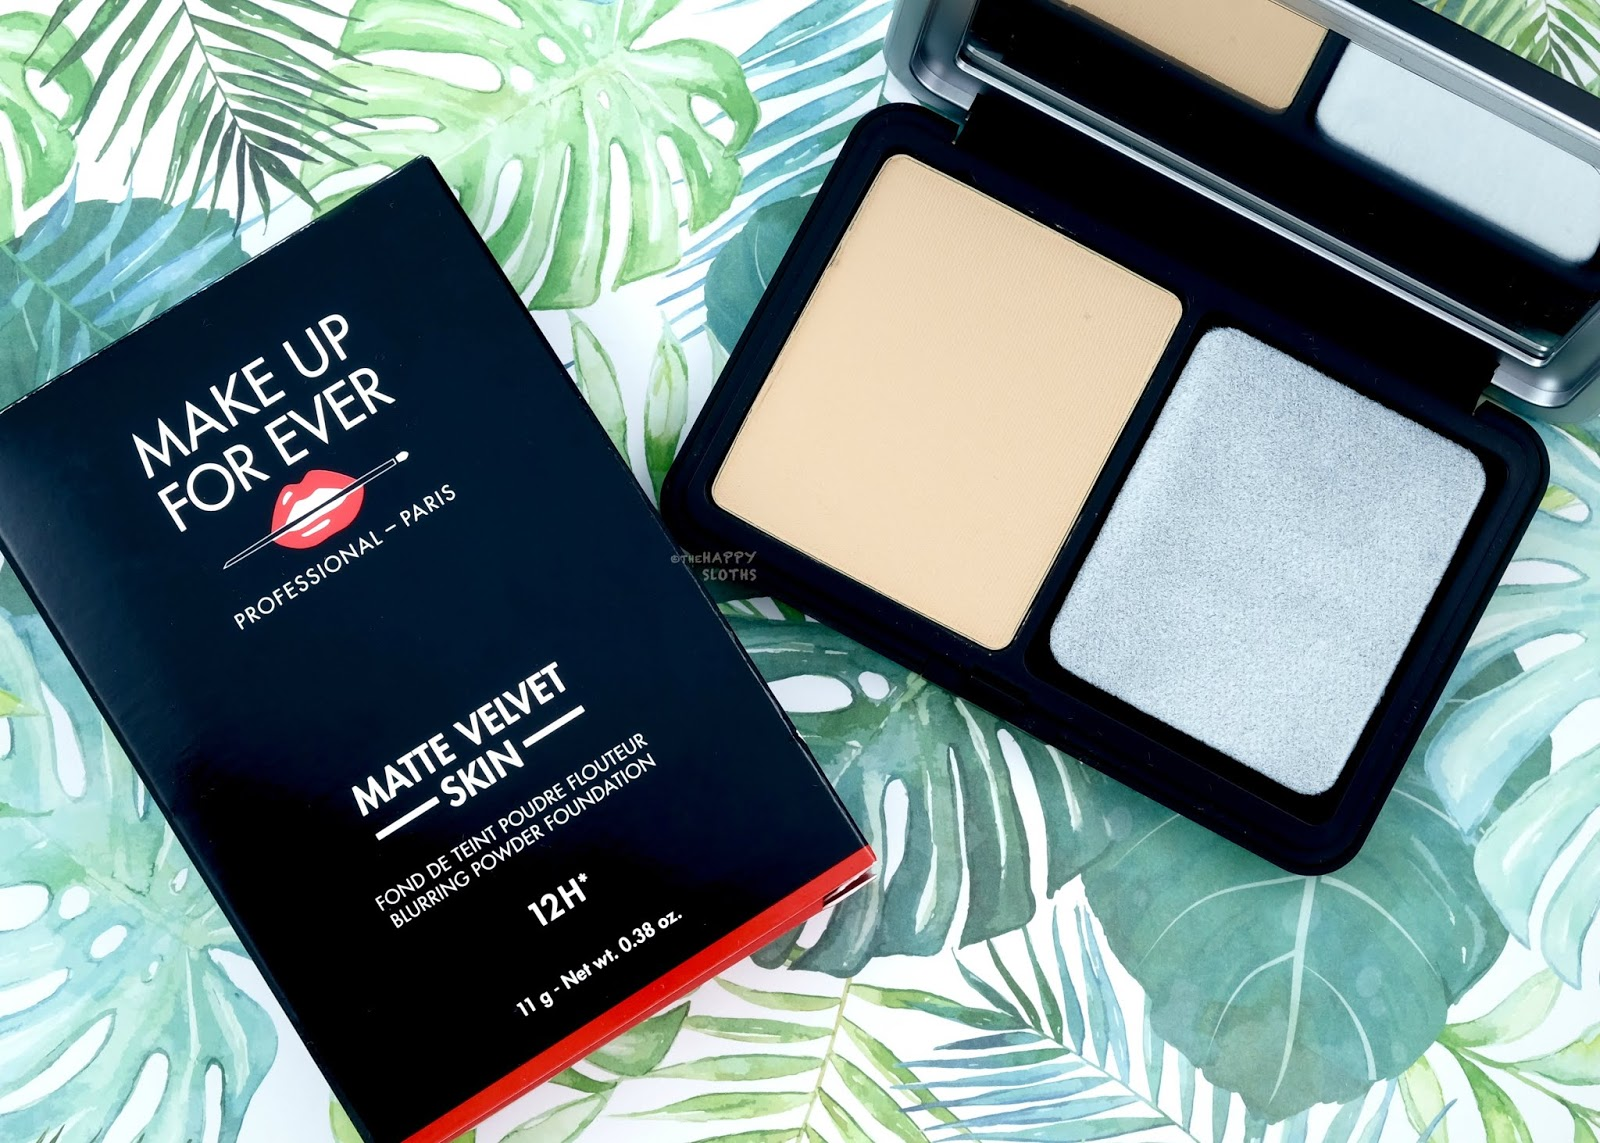 Make Up For Ever | Matte Velvet Skin Blurring Powder Foundation: Review and Swatches